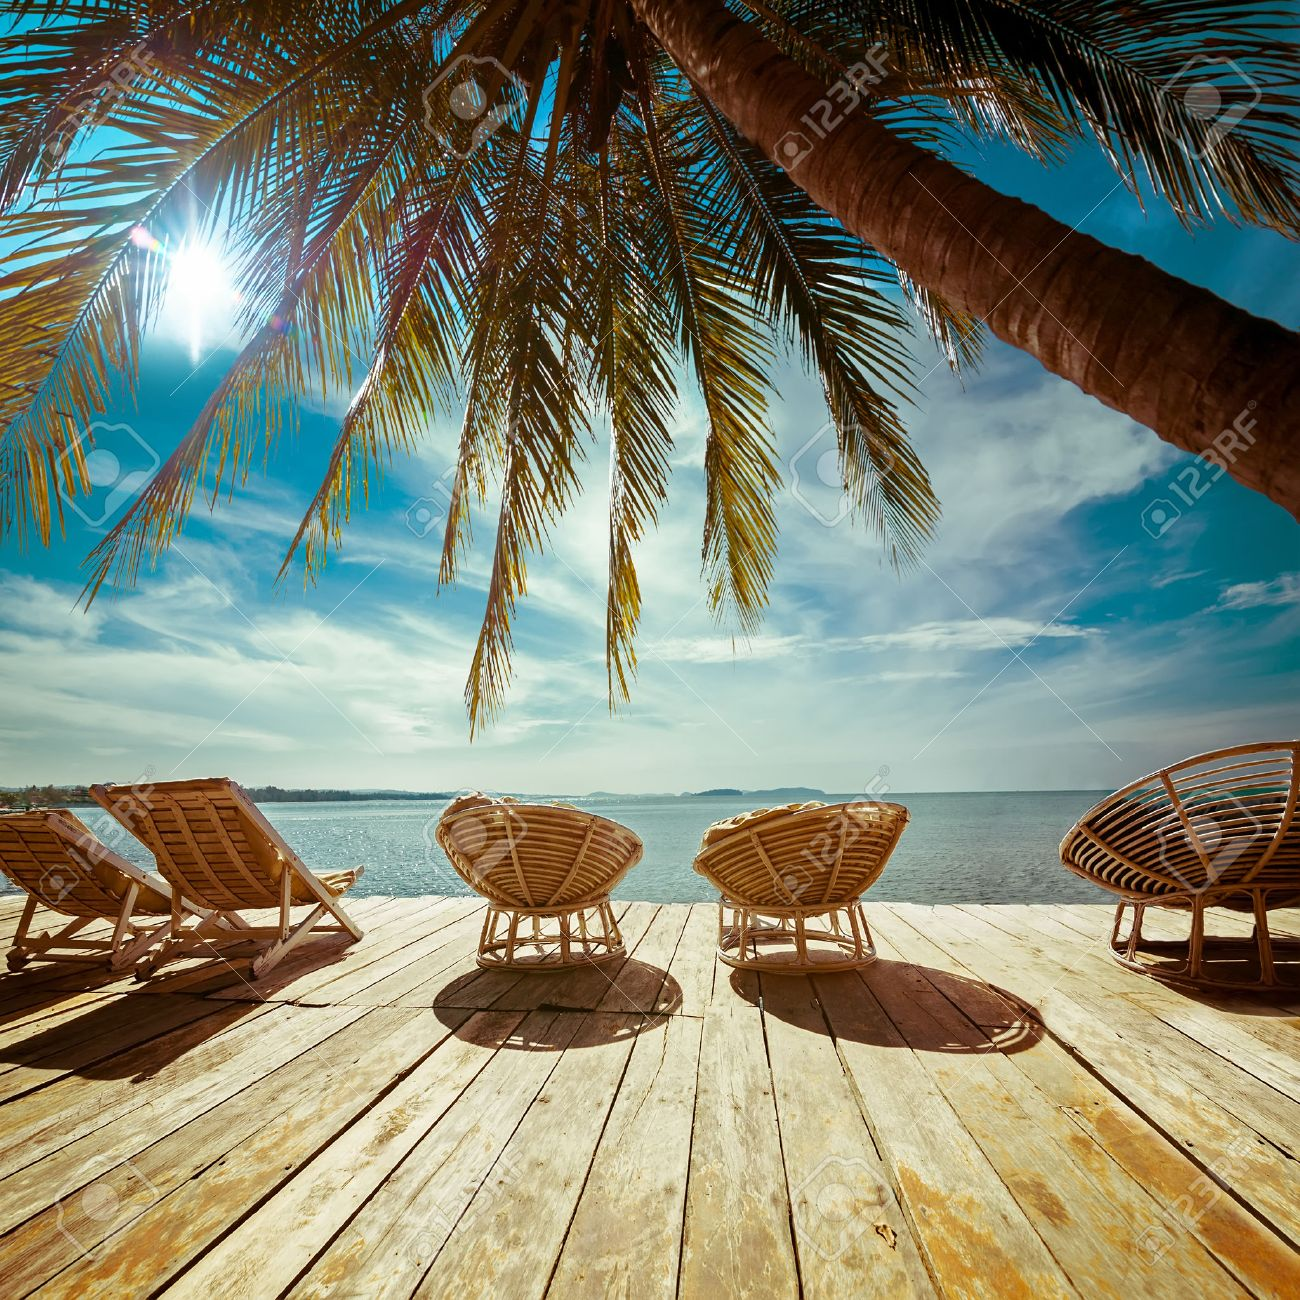 Amazing Tropical Beach Landscape With Palm Tree And Chairs For Relaxation On Wooden Terrace Travel